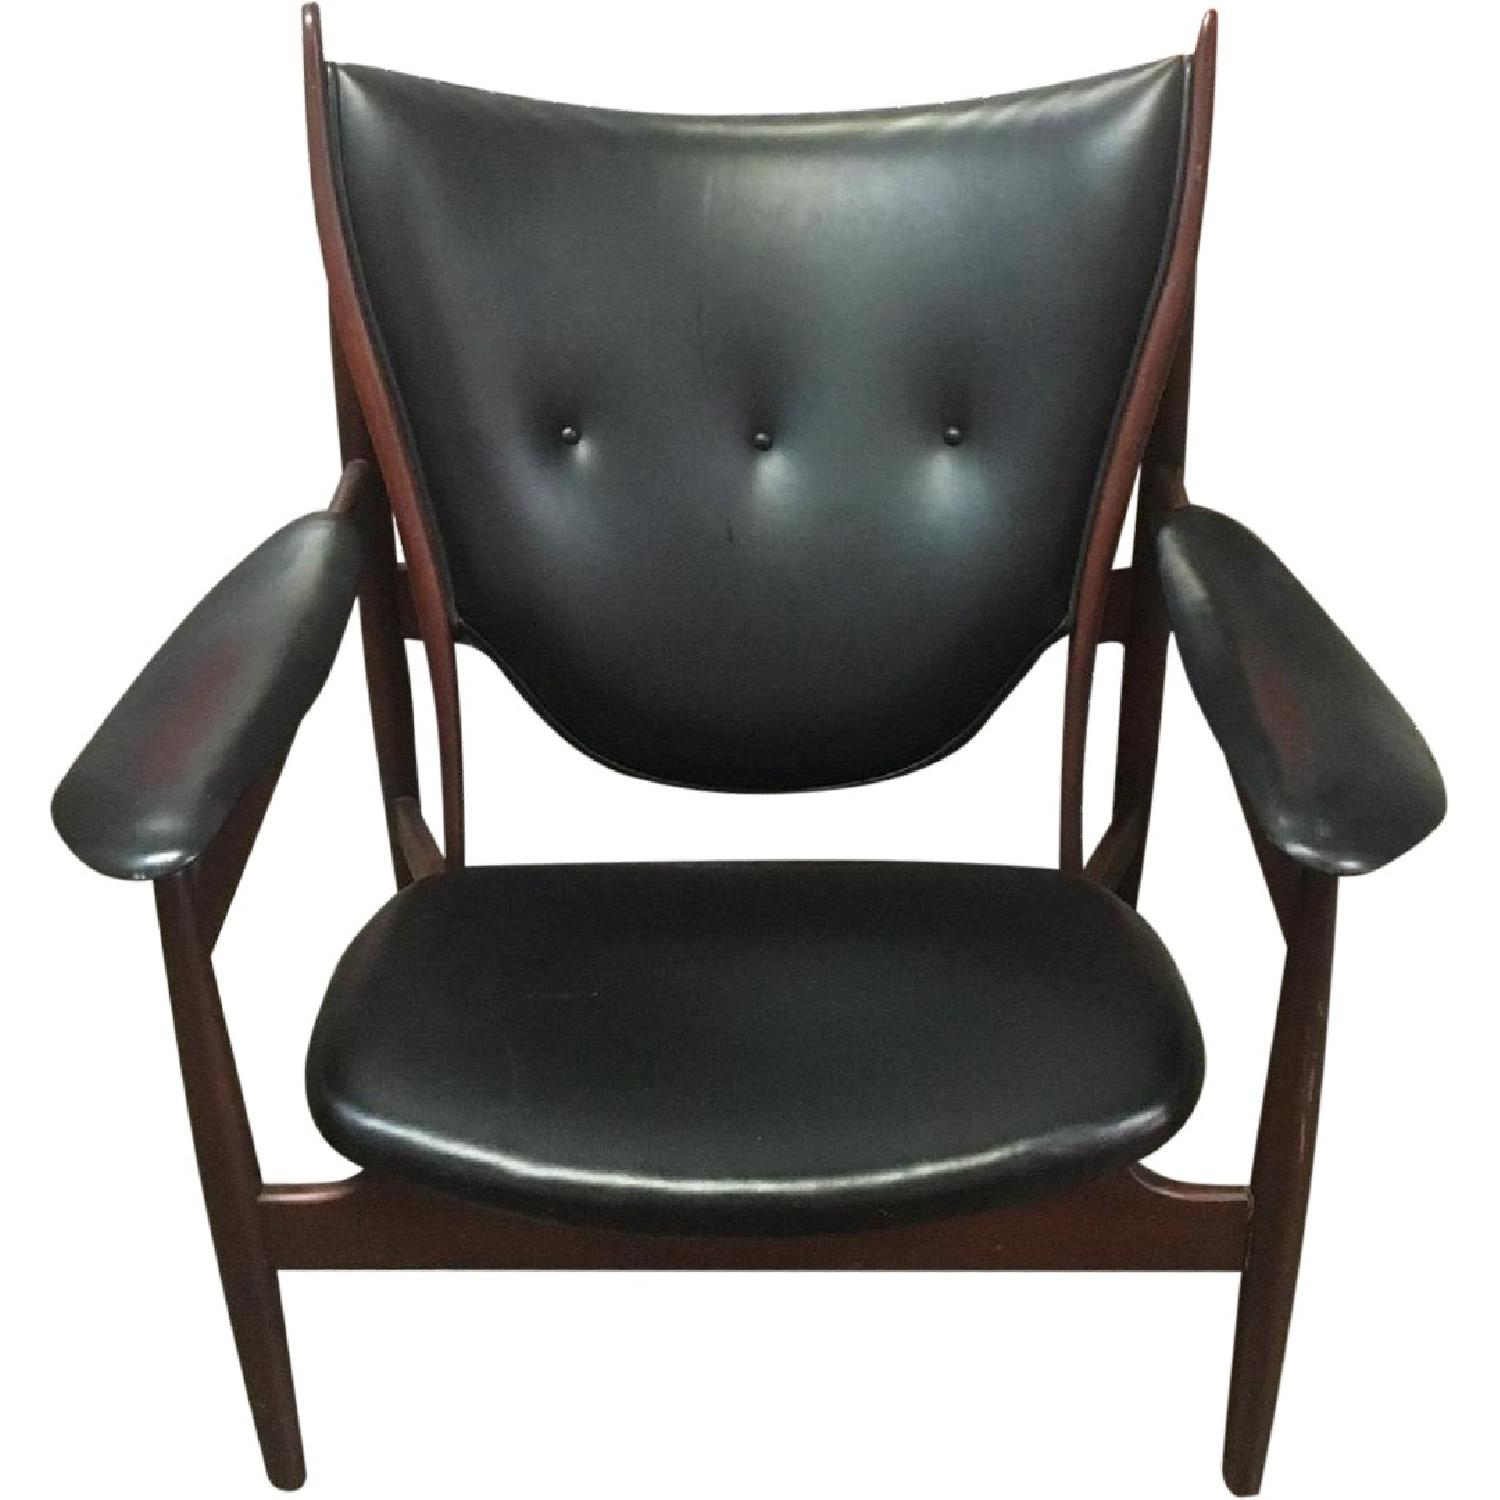 Interior Crafts Inc Mid Century Leather & Wood Chair